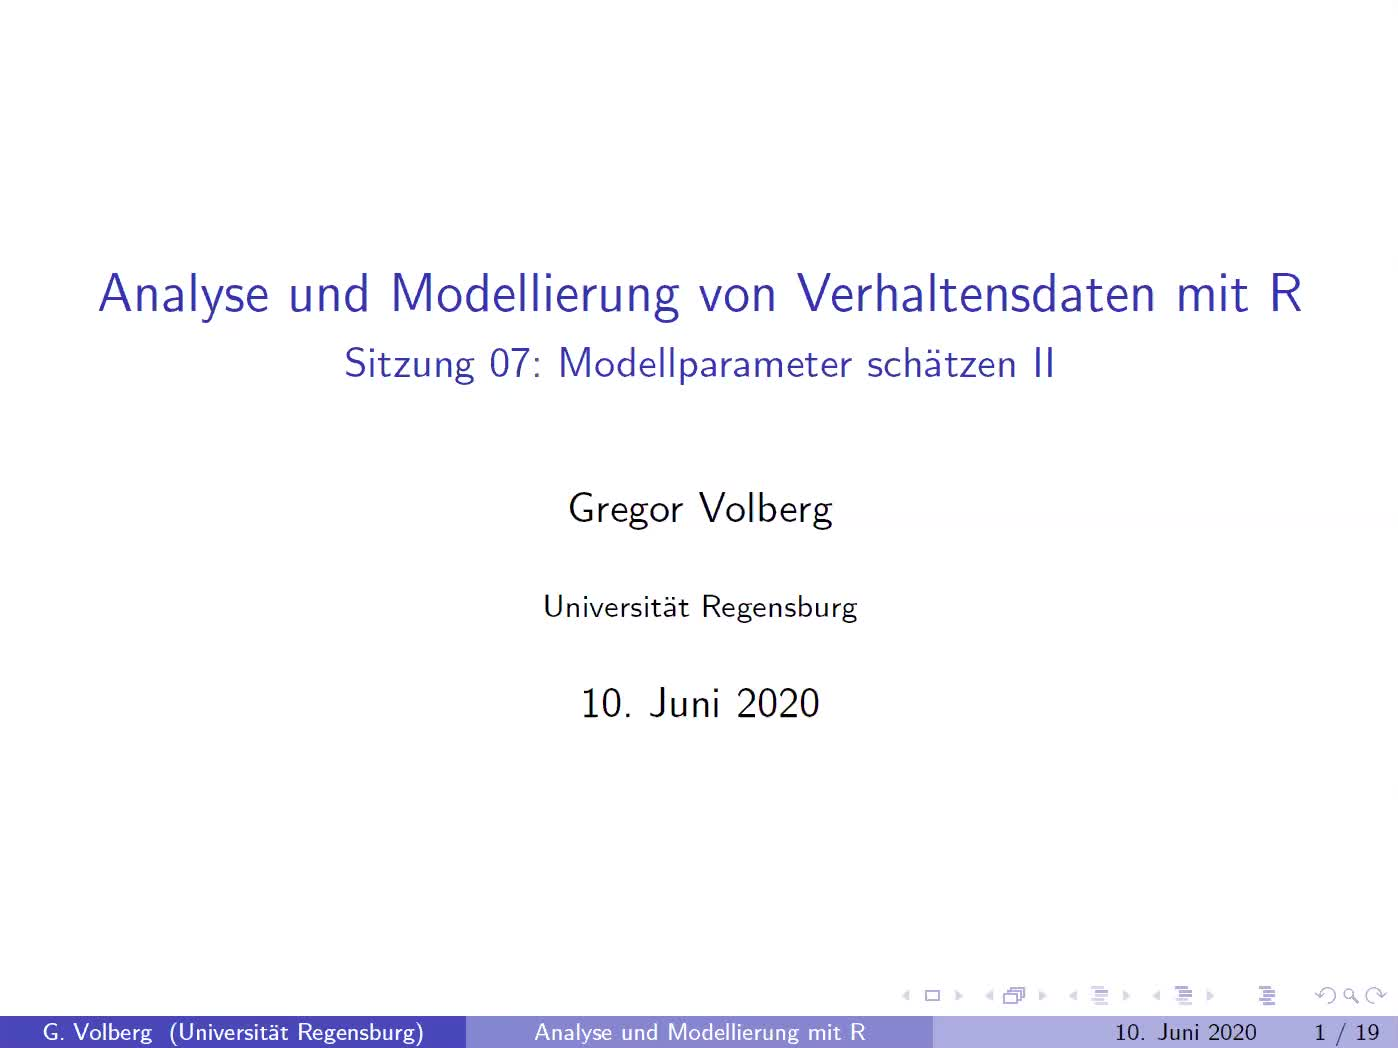 Sitzung 07: Zoom-Meeting